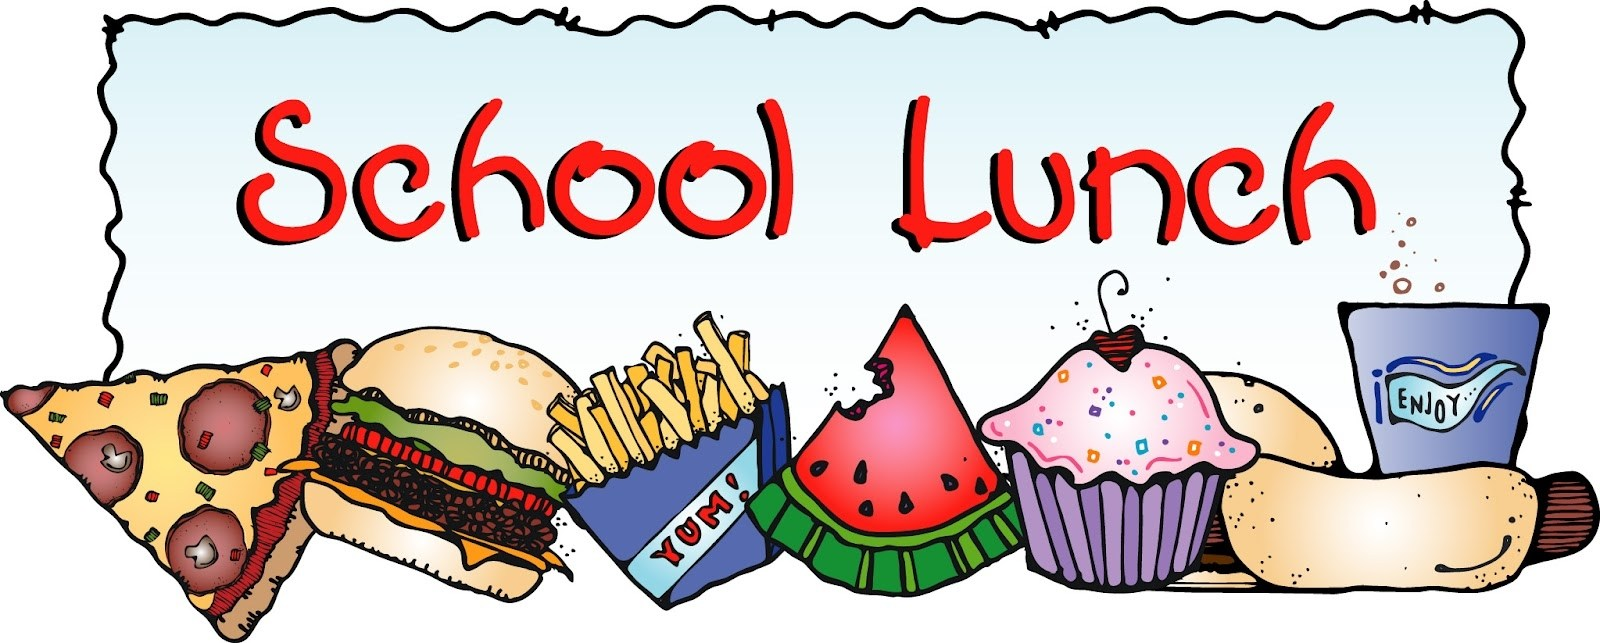 Lunch money clipart 5 » Clipart Portal.